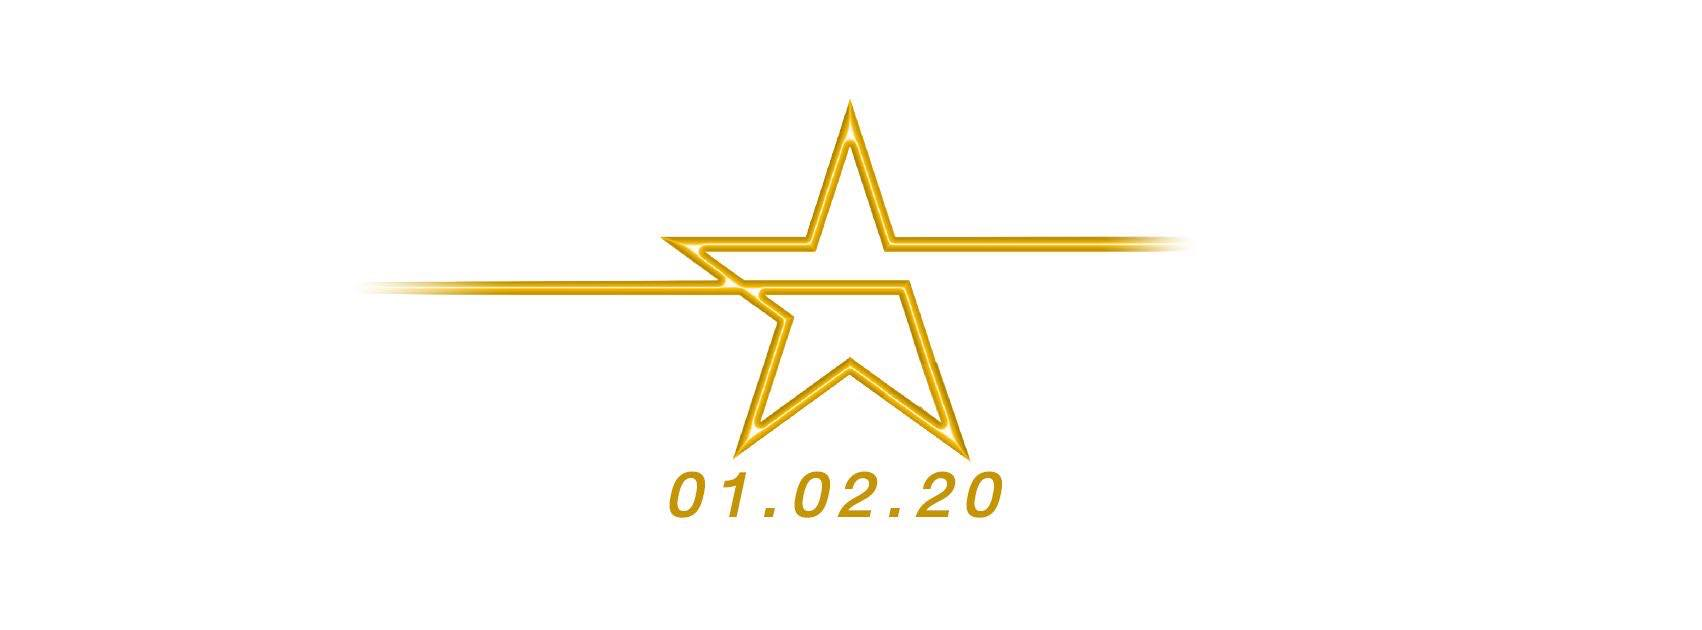 THE STAR 13